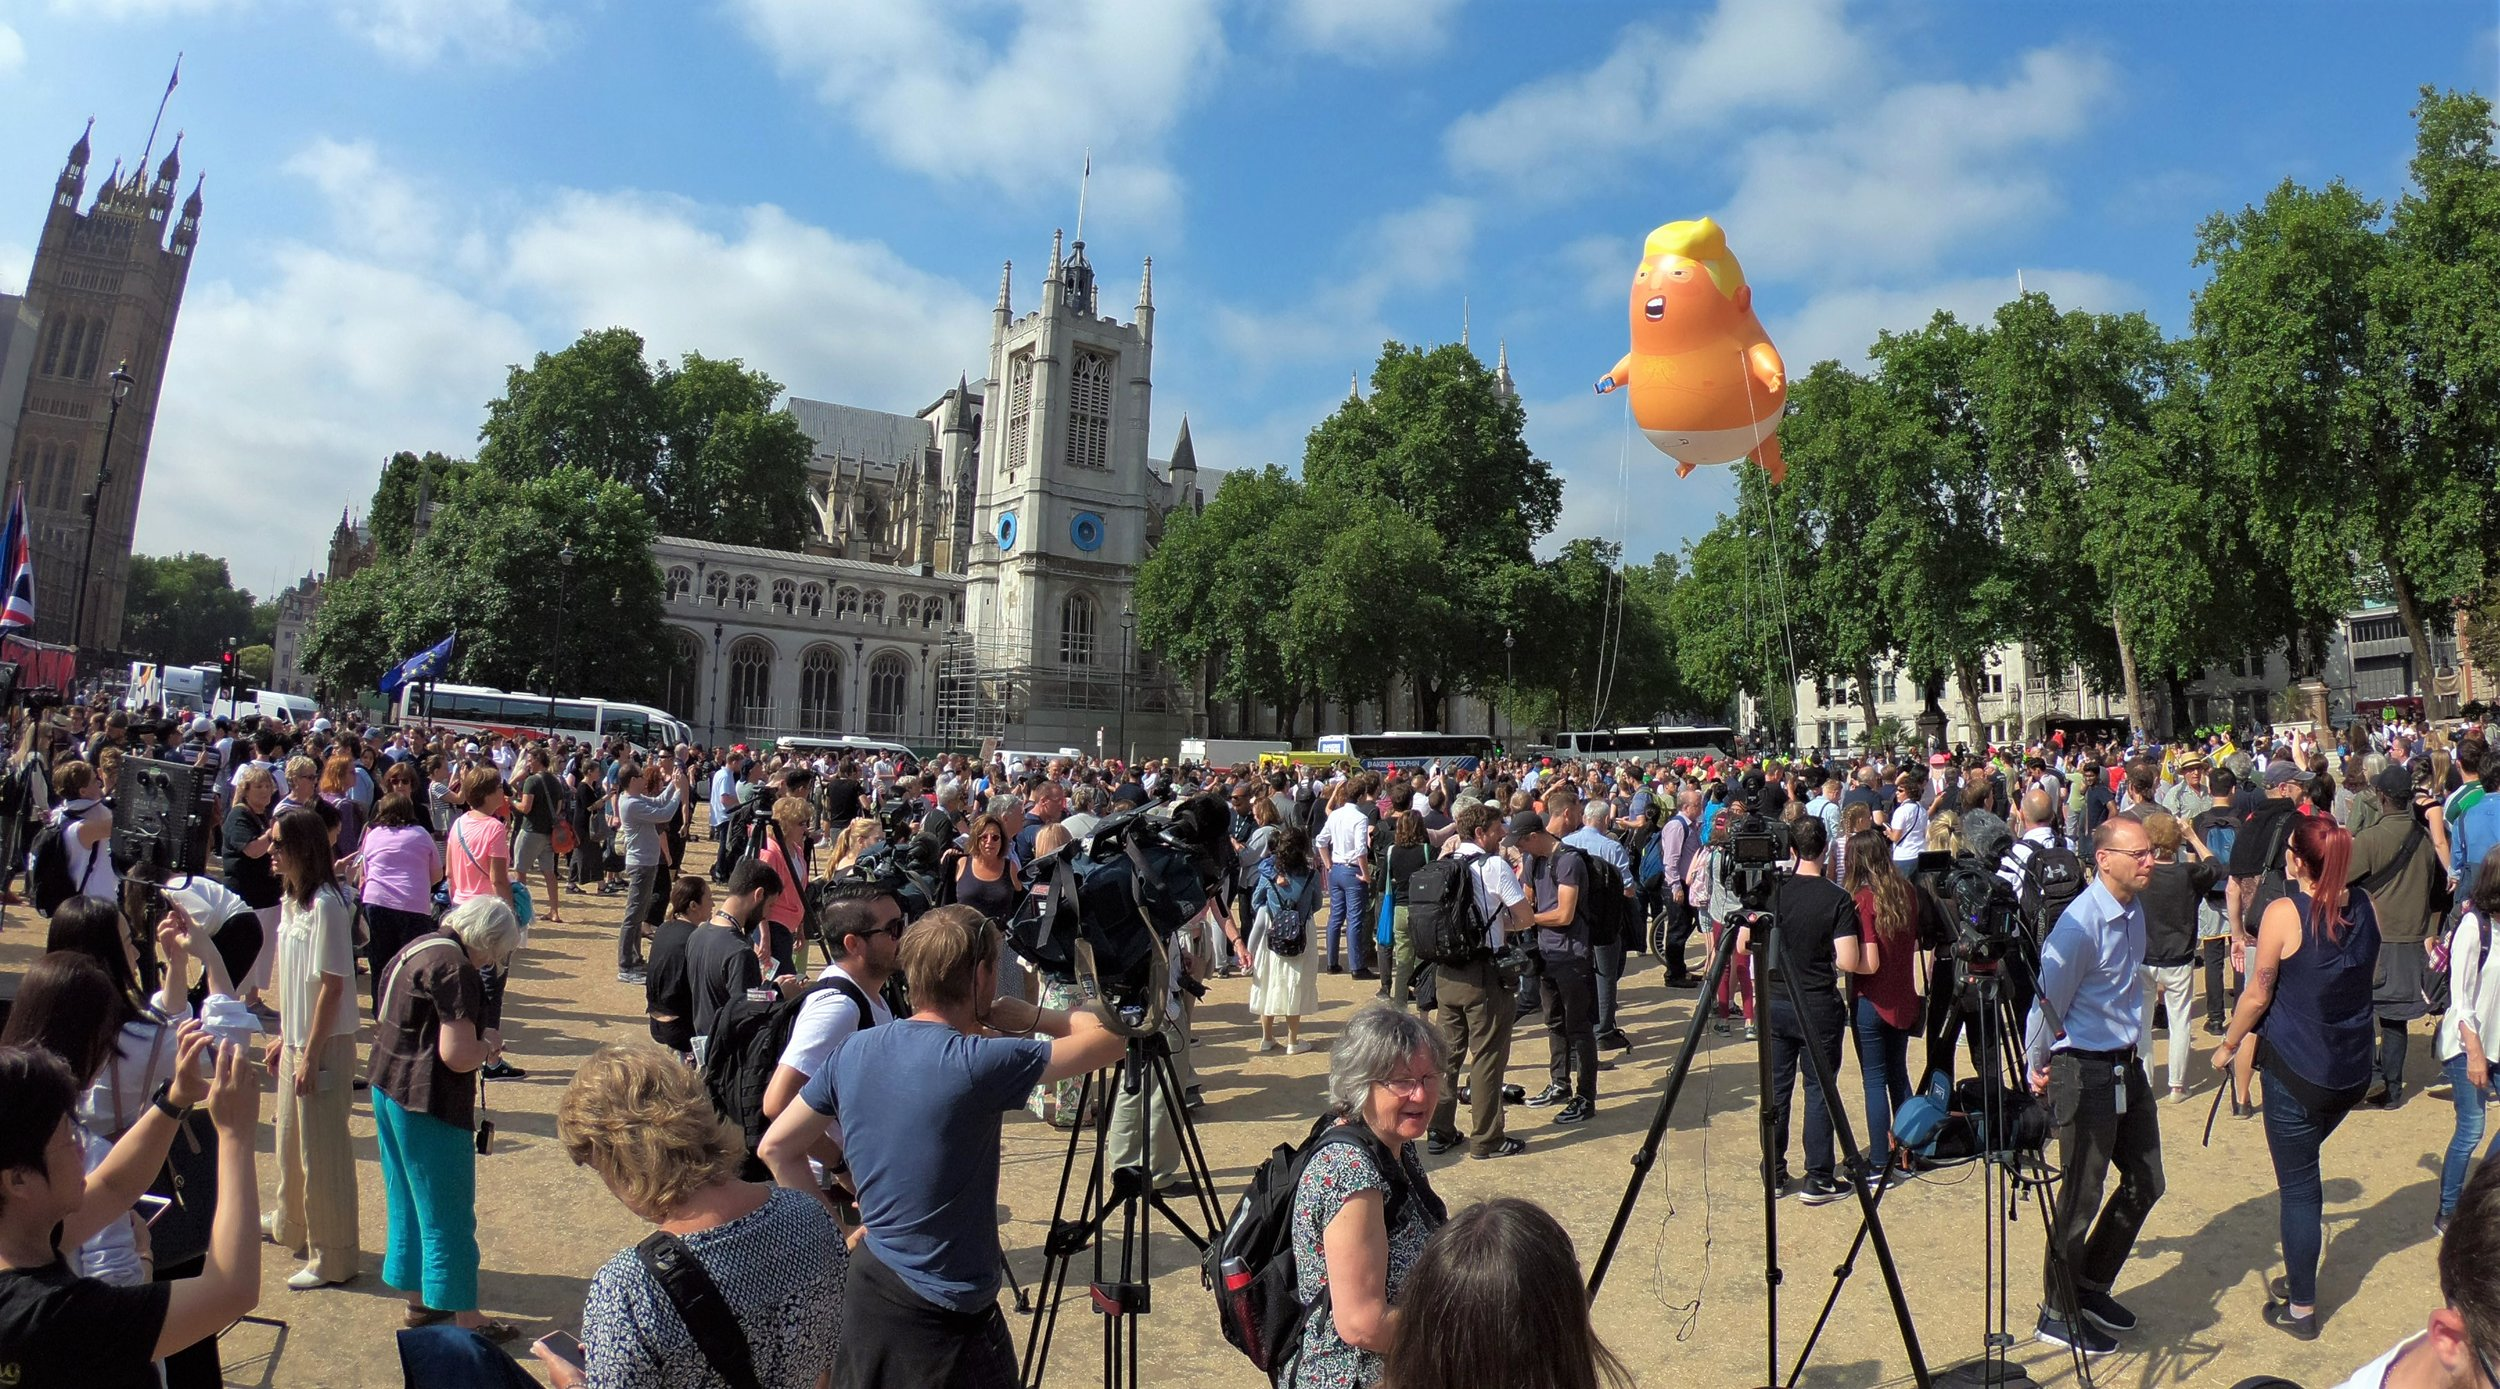 A few hours before the premiere..... giant inflatable Trump Baby, Parliament Square, London. Oh, come on. Don't act like this doesn't happen every couple of weeks where you live...